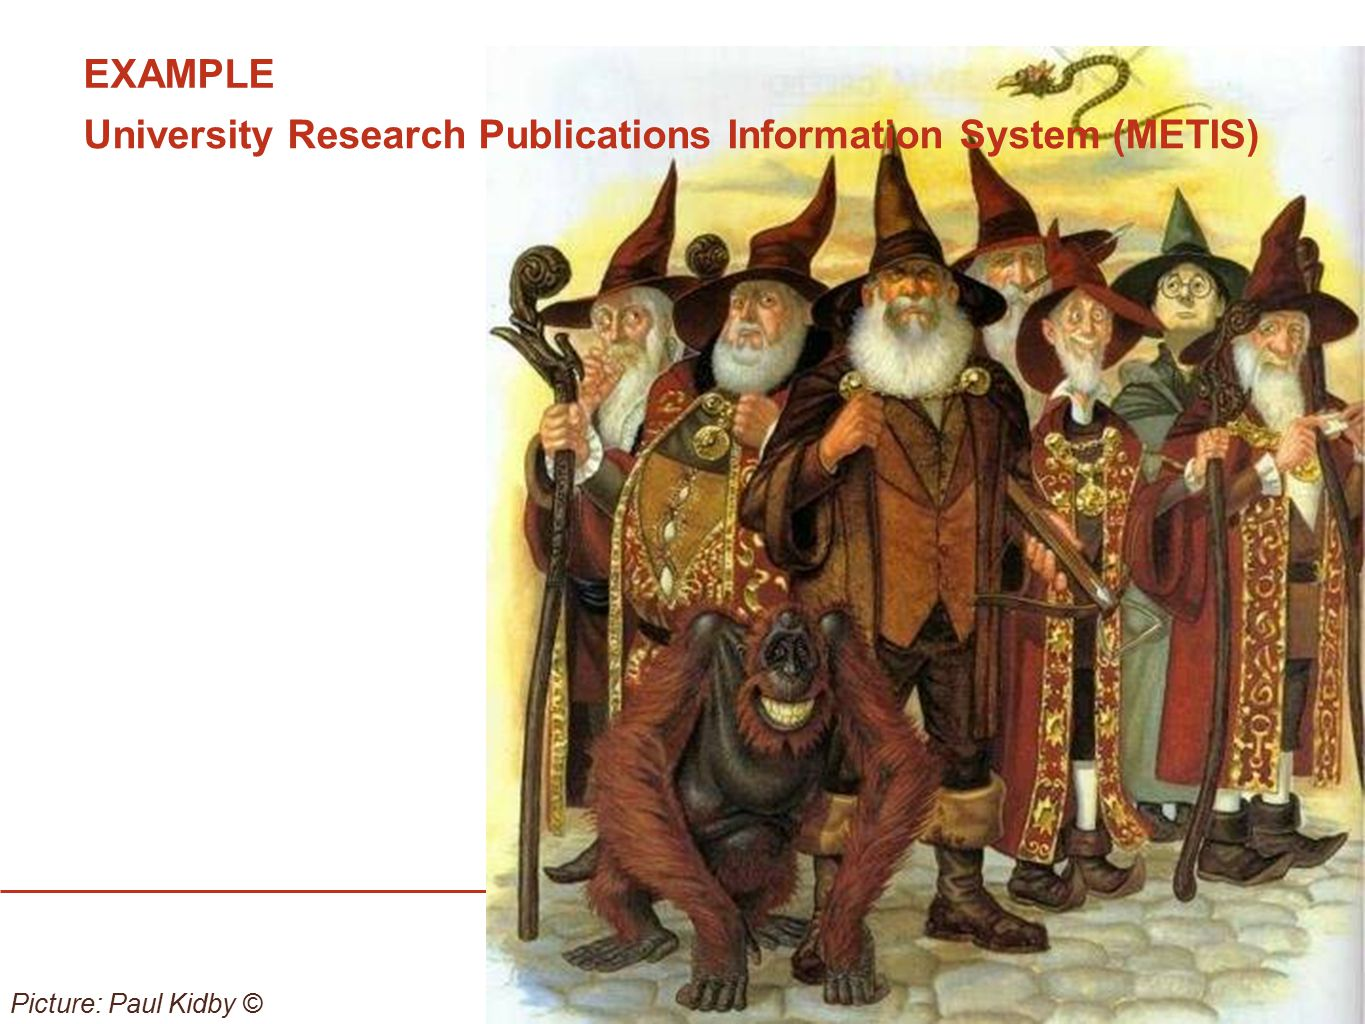 University Research Publications Information System (METIS)